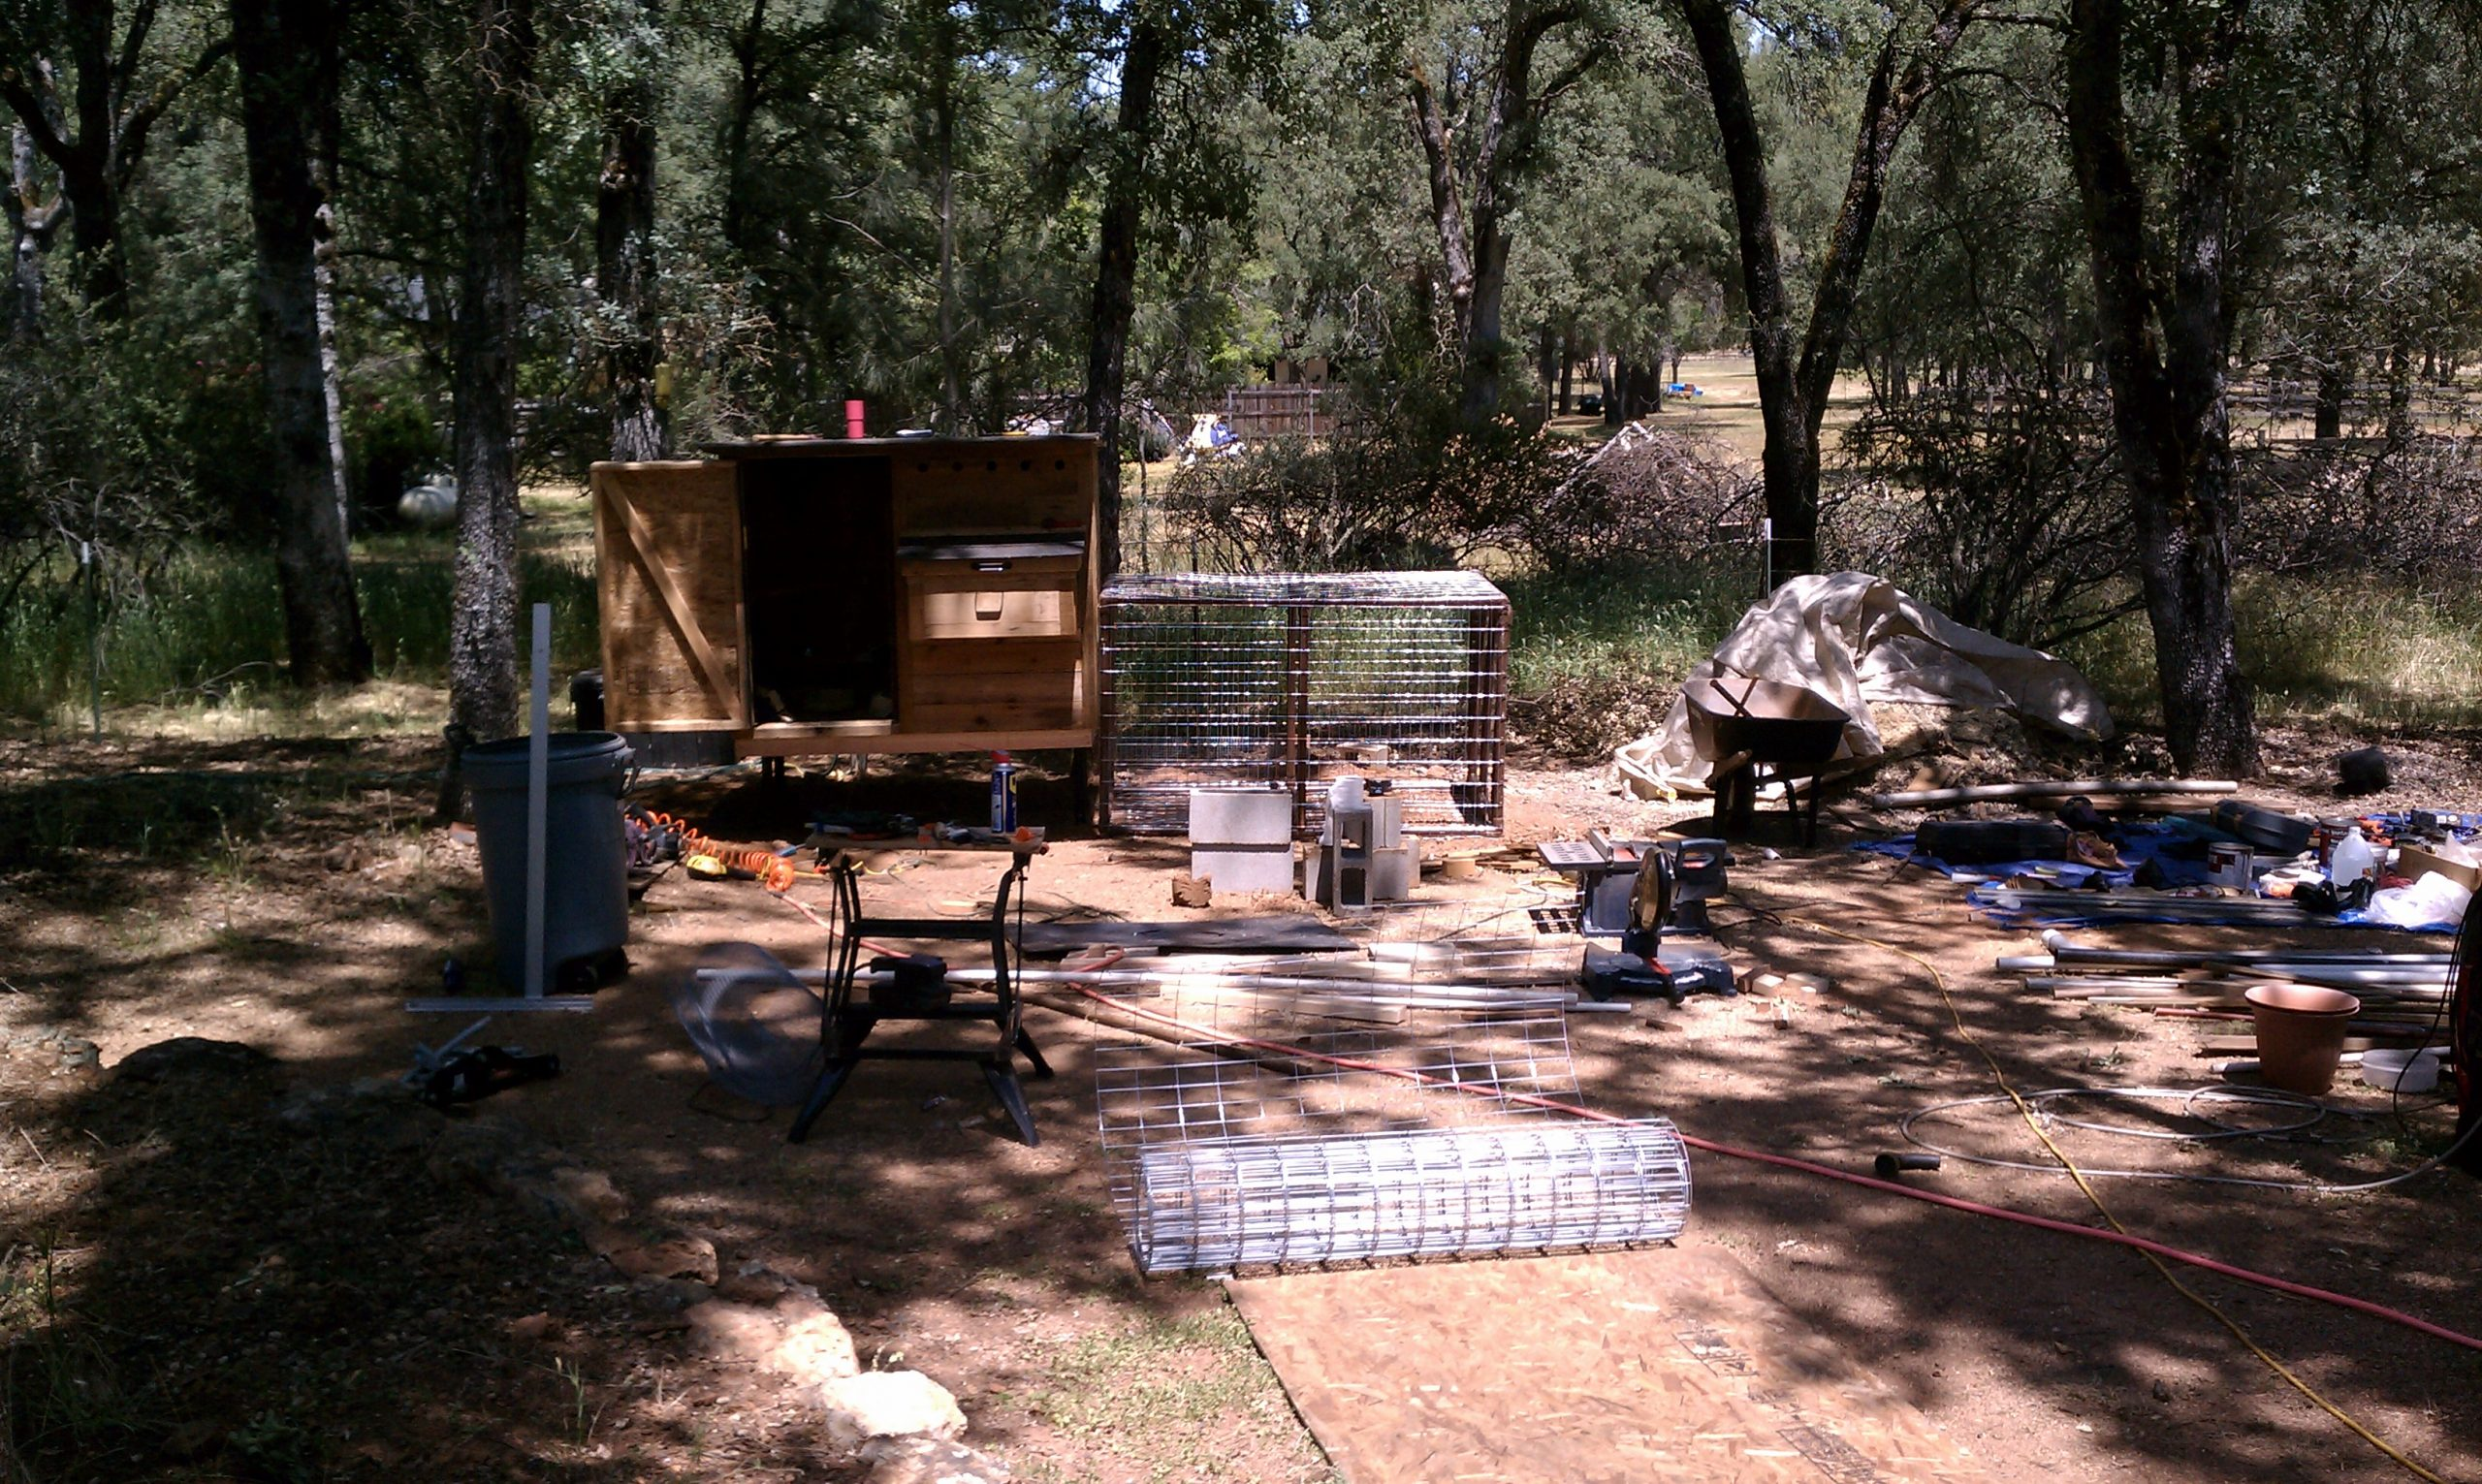 The Chicken Coop Build